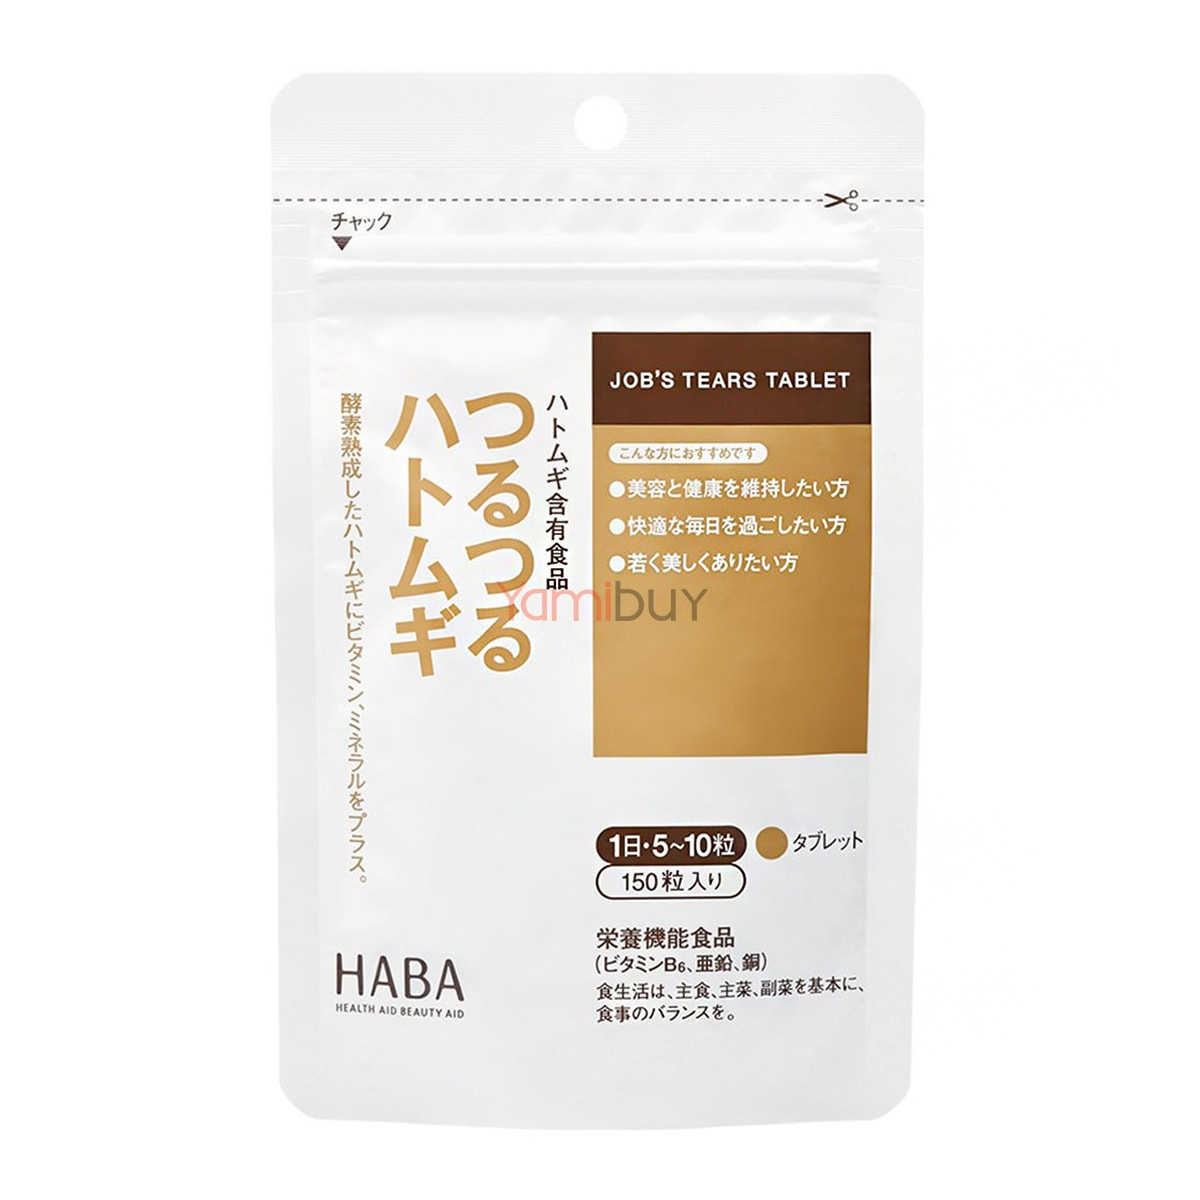 Yamibuy.com:Customer reviews:HABA Job's Tears Tablet 150Tablets